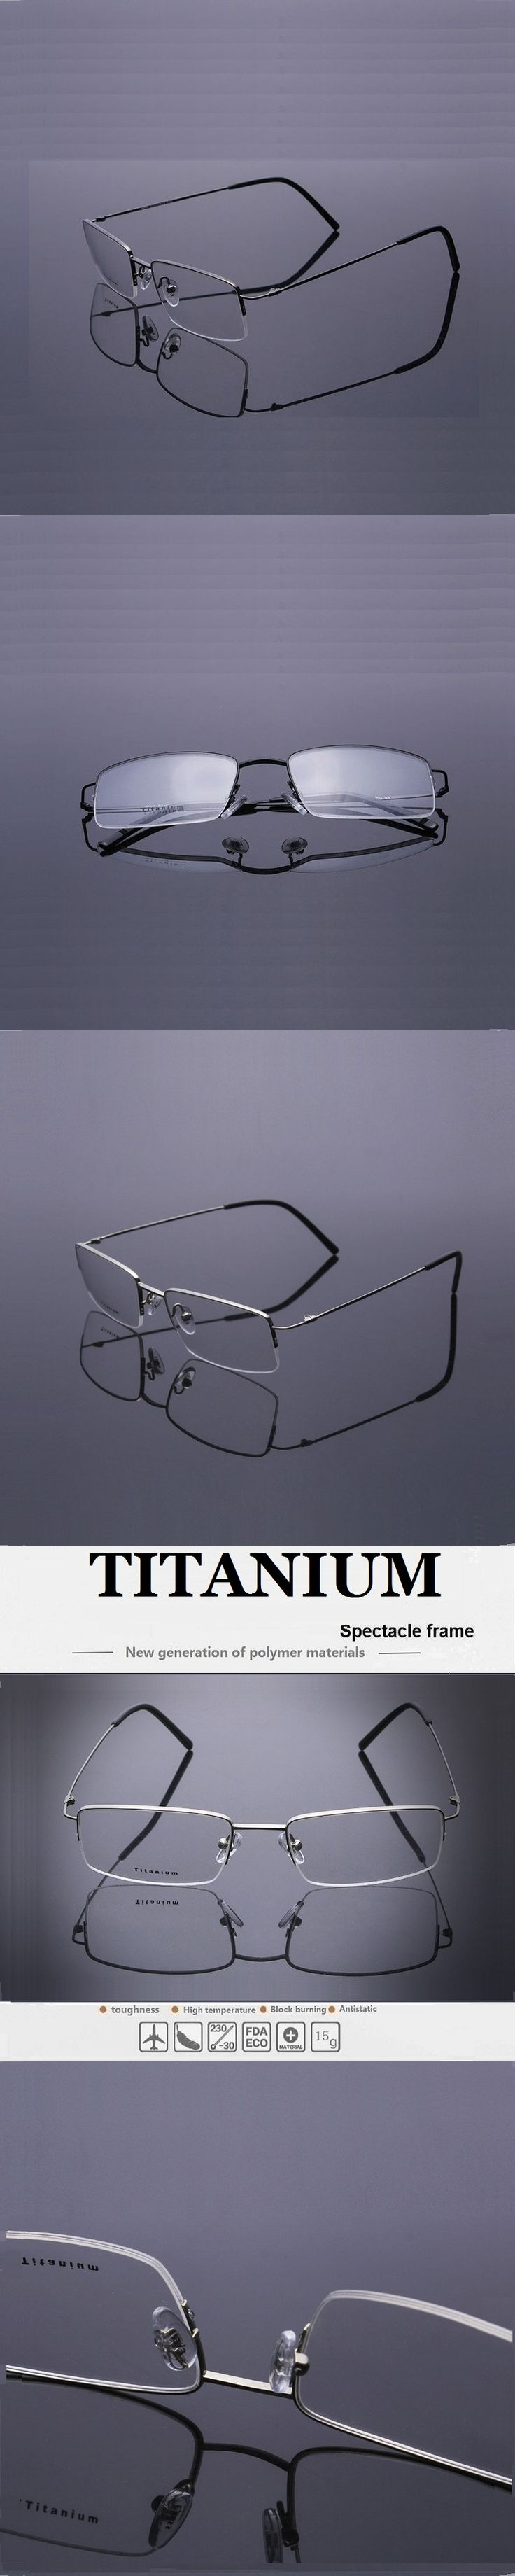 52-18-140 new men's business  titanium spectacle frame half frame myopia spectacles frame 8995 lentes opticos  free shipping